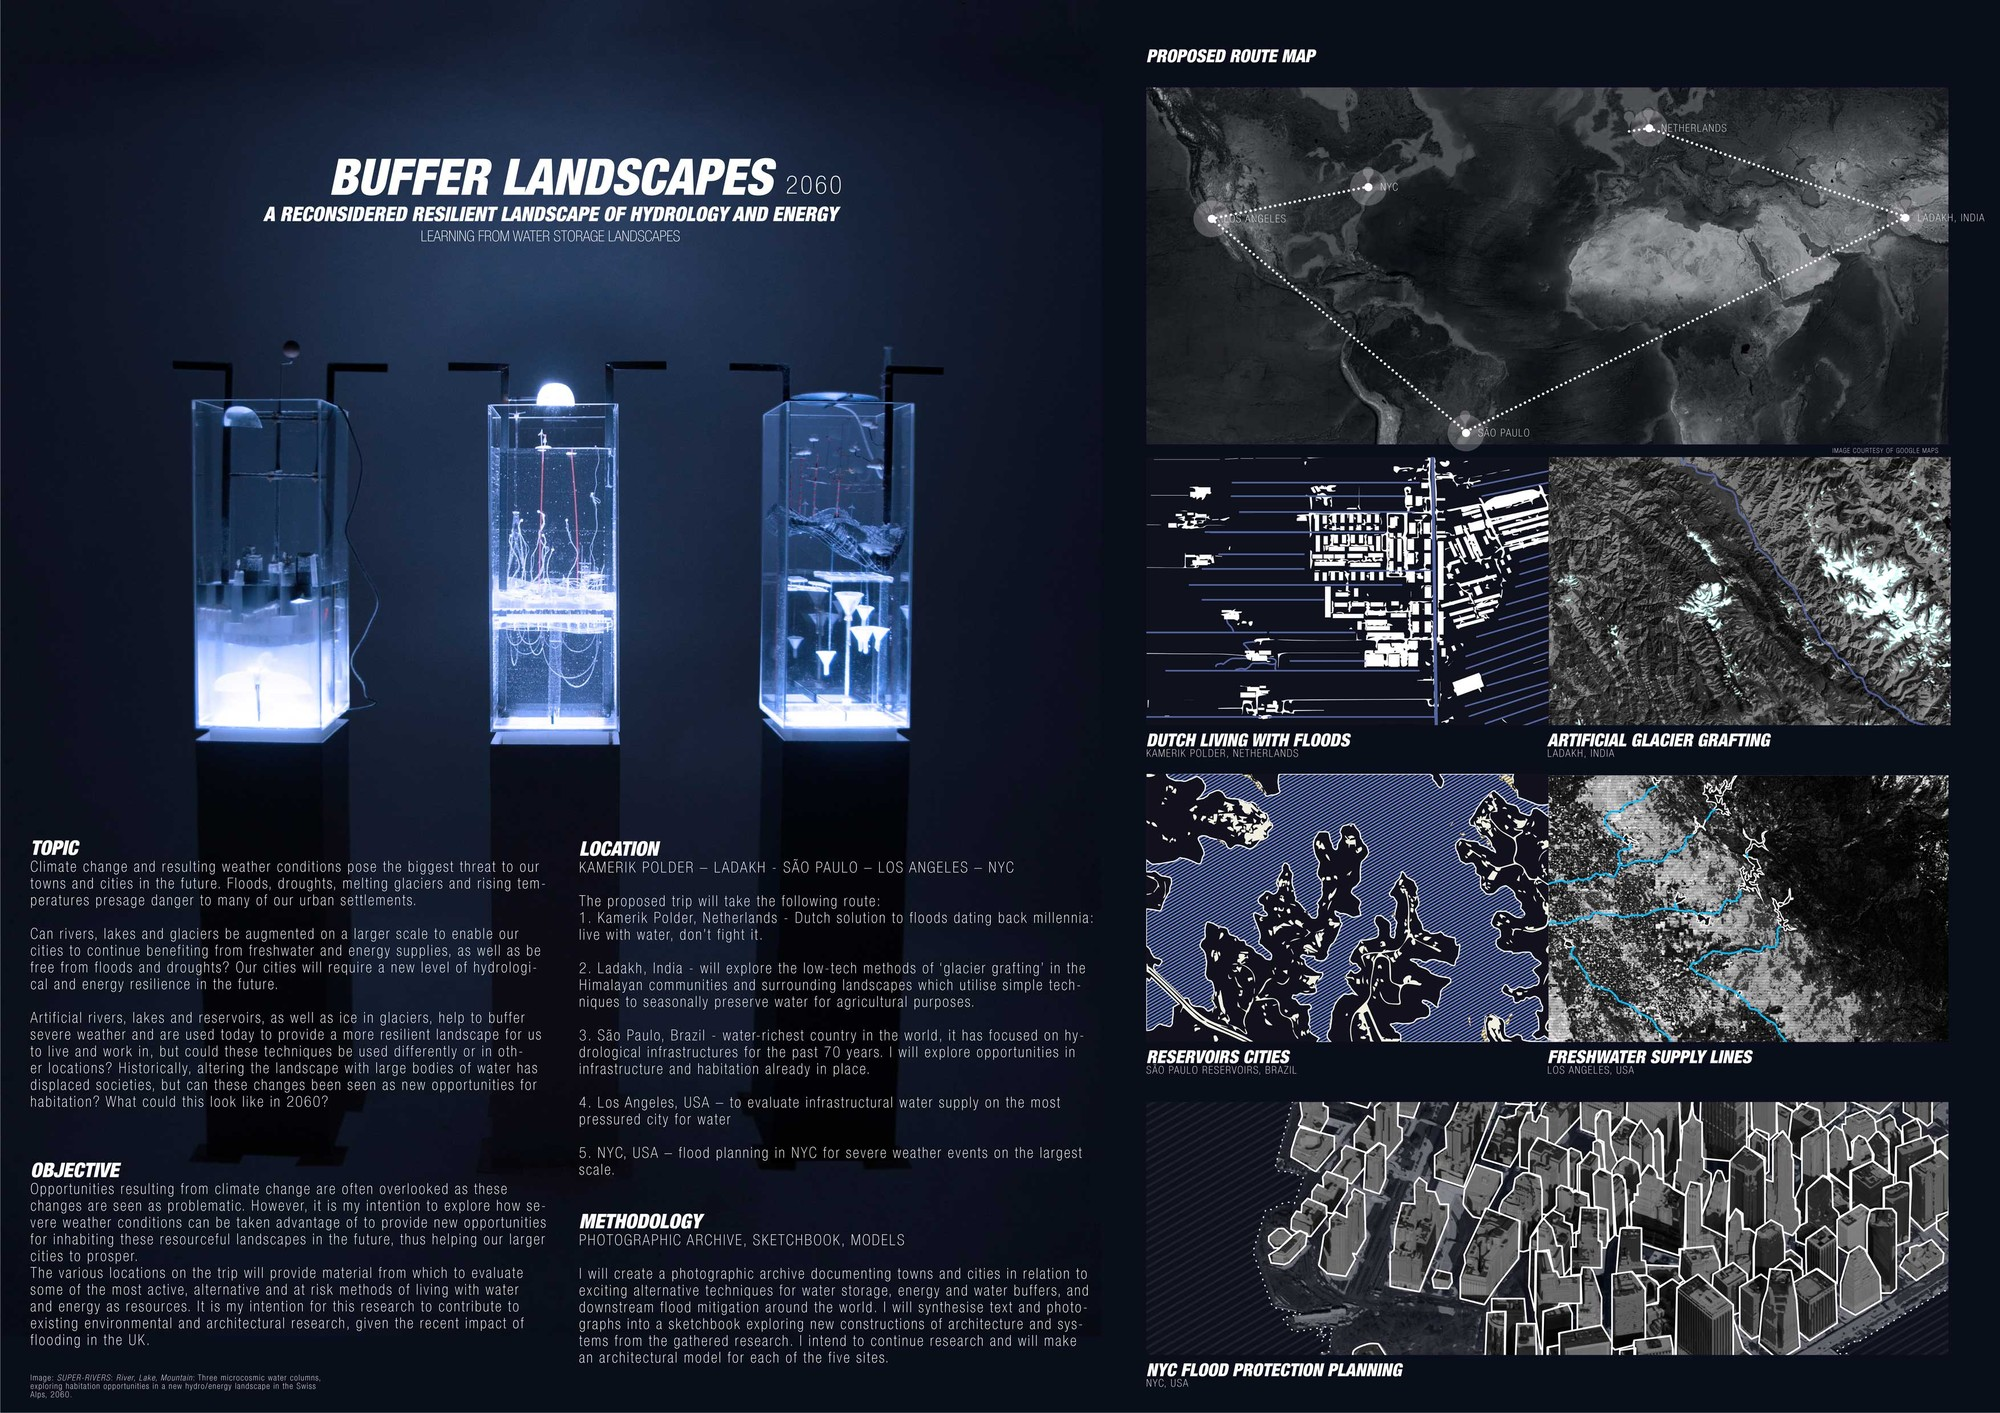 Buffer Landscapes 2060. Image © Joe Paxton; Courtesy of Foster + Partners